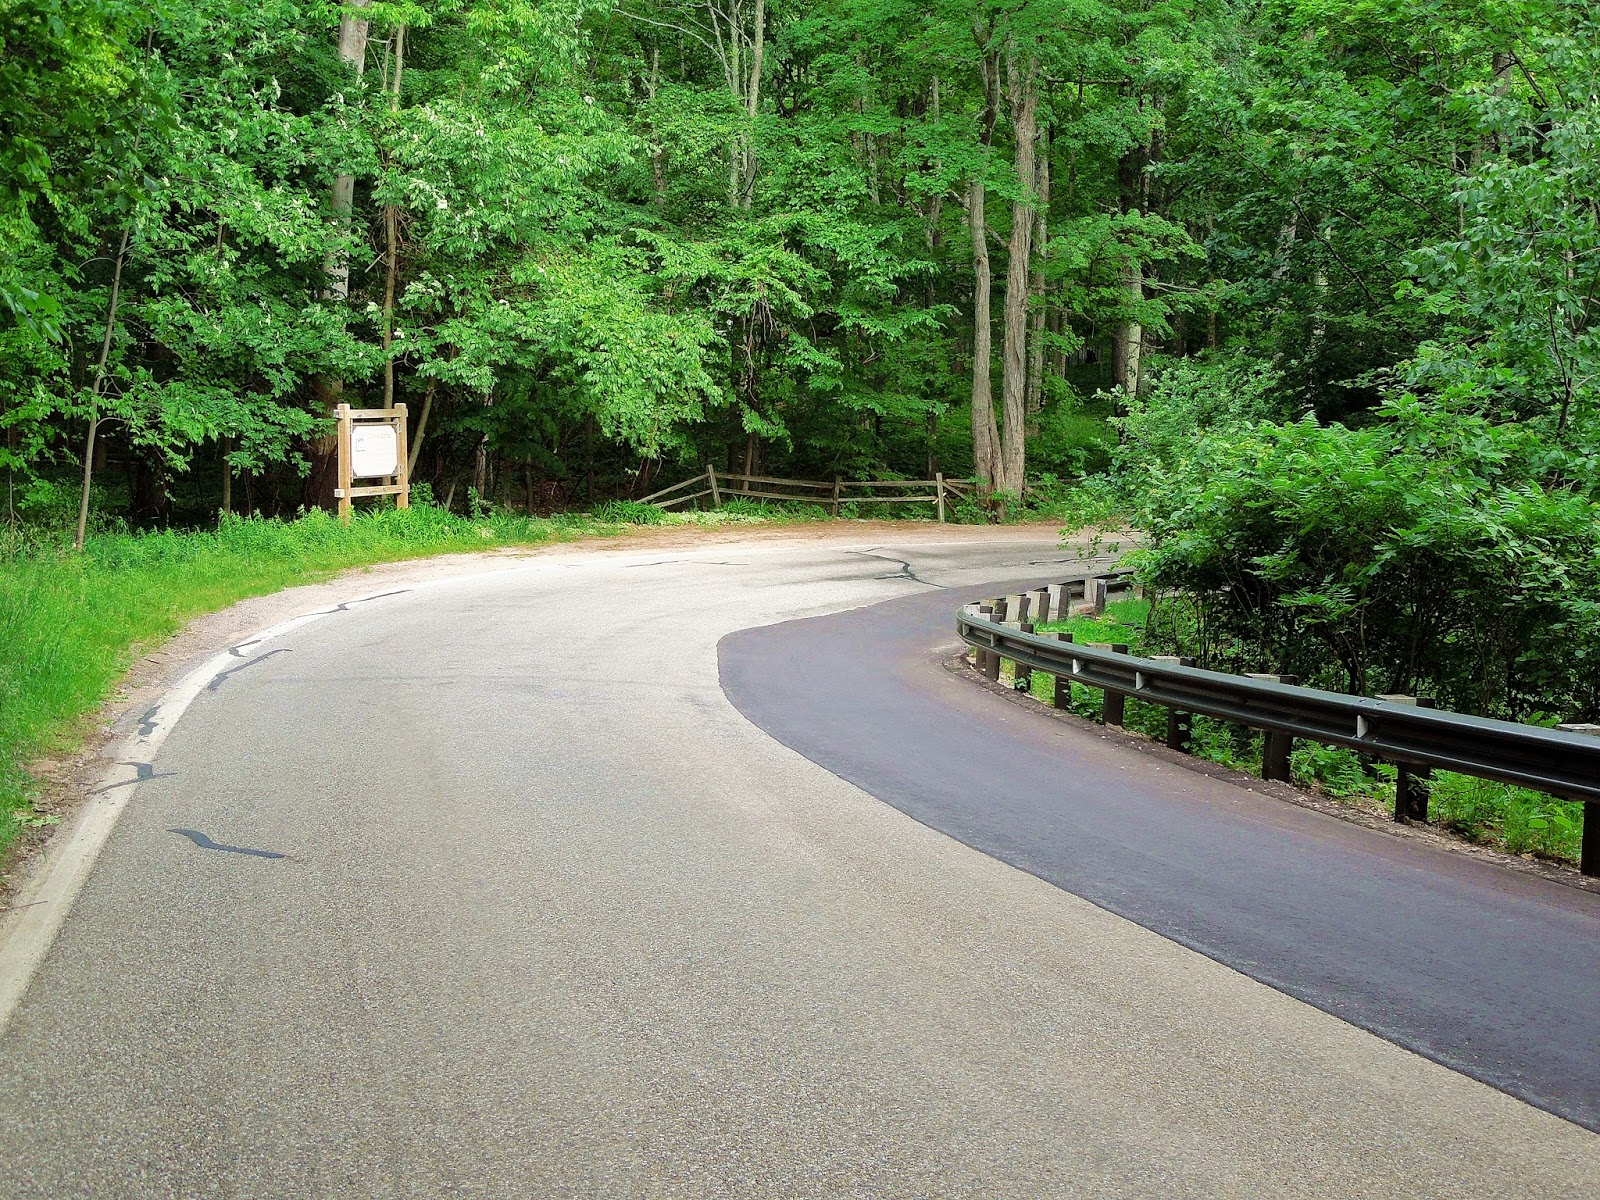 Focusing On Travel : M-119 - Scenic Tunnel of Trees Drive